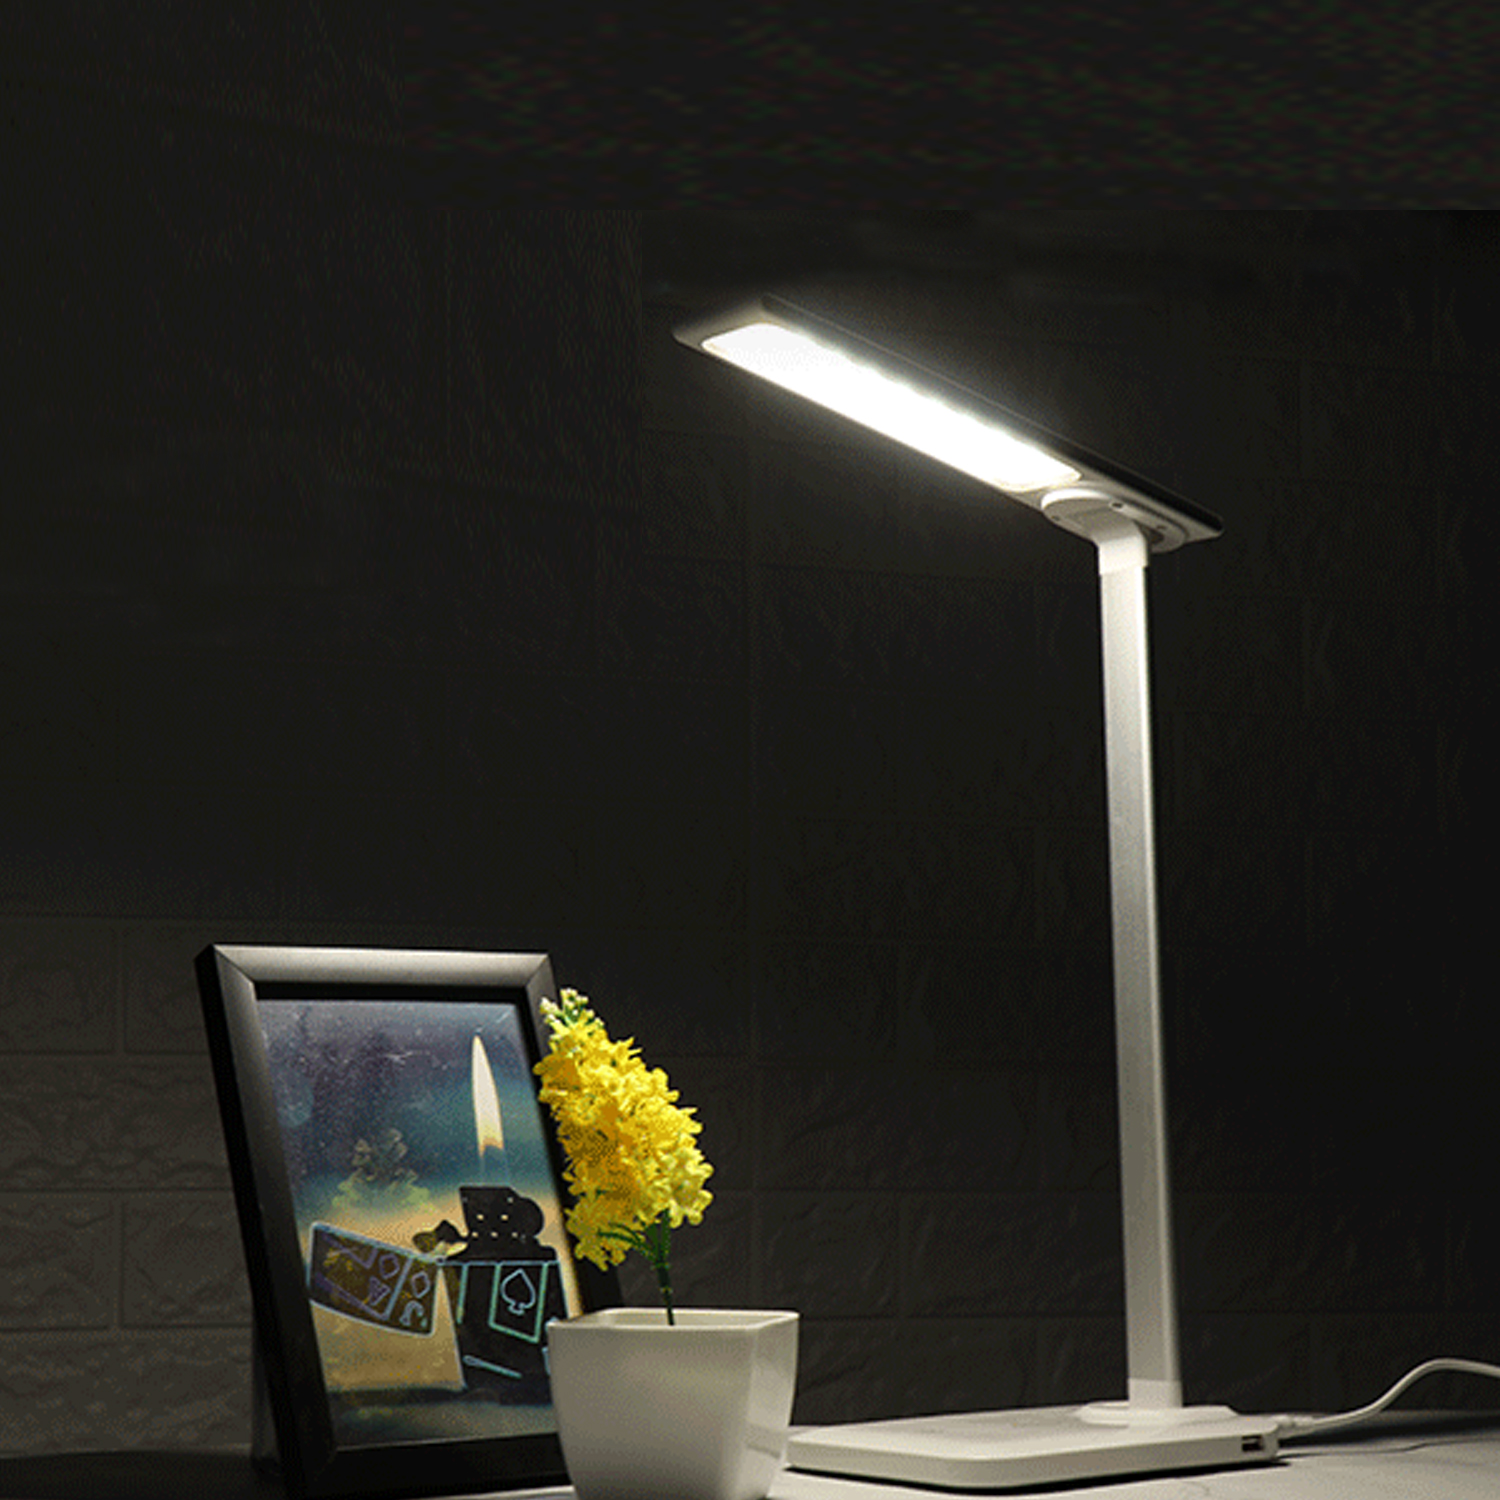 Table lamp with usb port and outlet wireless charging station furniture